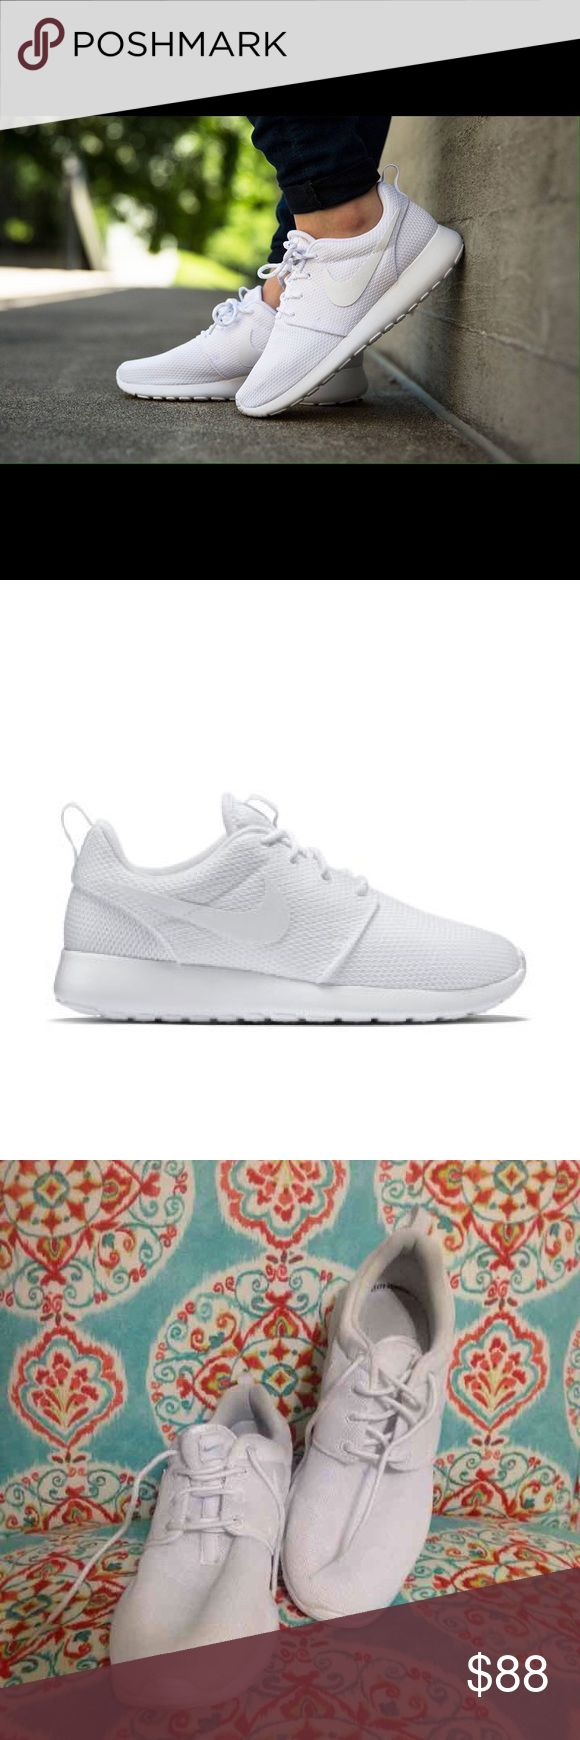 White Nike Roshe Runs Beautiful and clean all white Roshe Runs! Worn only once or twice and in great condition. The only signs of wear are the bottoms, which are a little dirty (as shown in picture). These are a women's size 9 and a men's size 7 1/2. Love these shoes, but I have too many and really never show these enough attention! Feel free to make me an offer! Nike Shoes Athletic Shoes